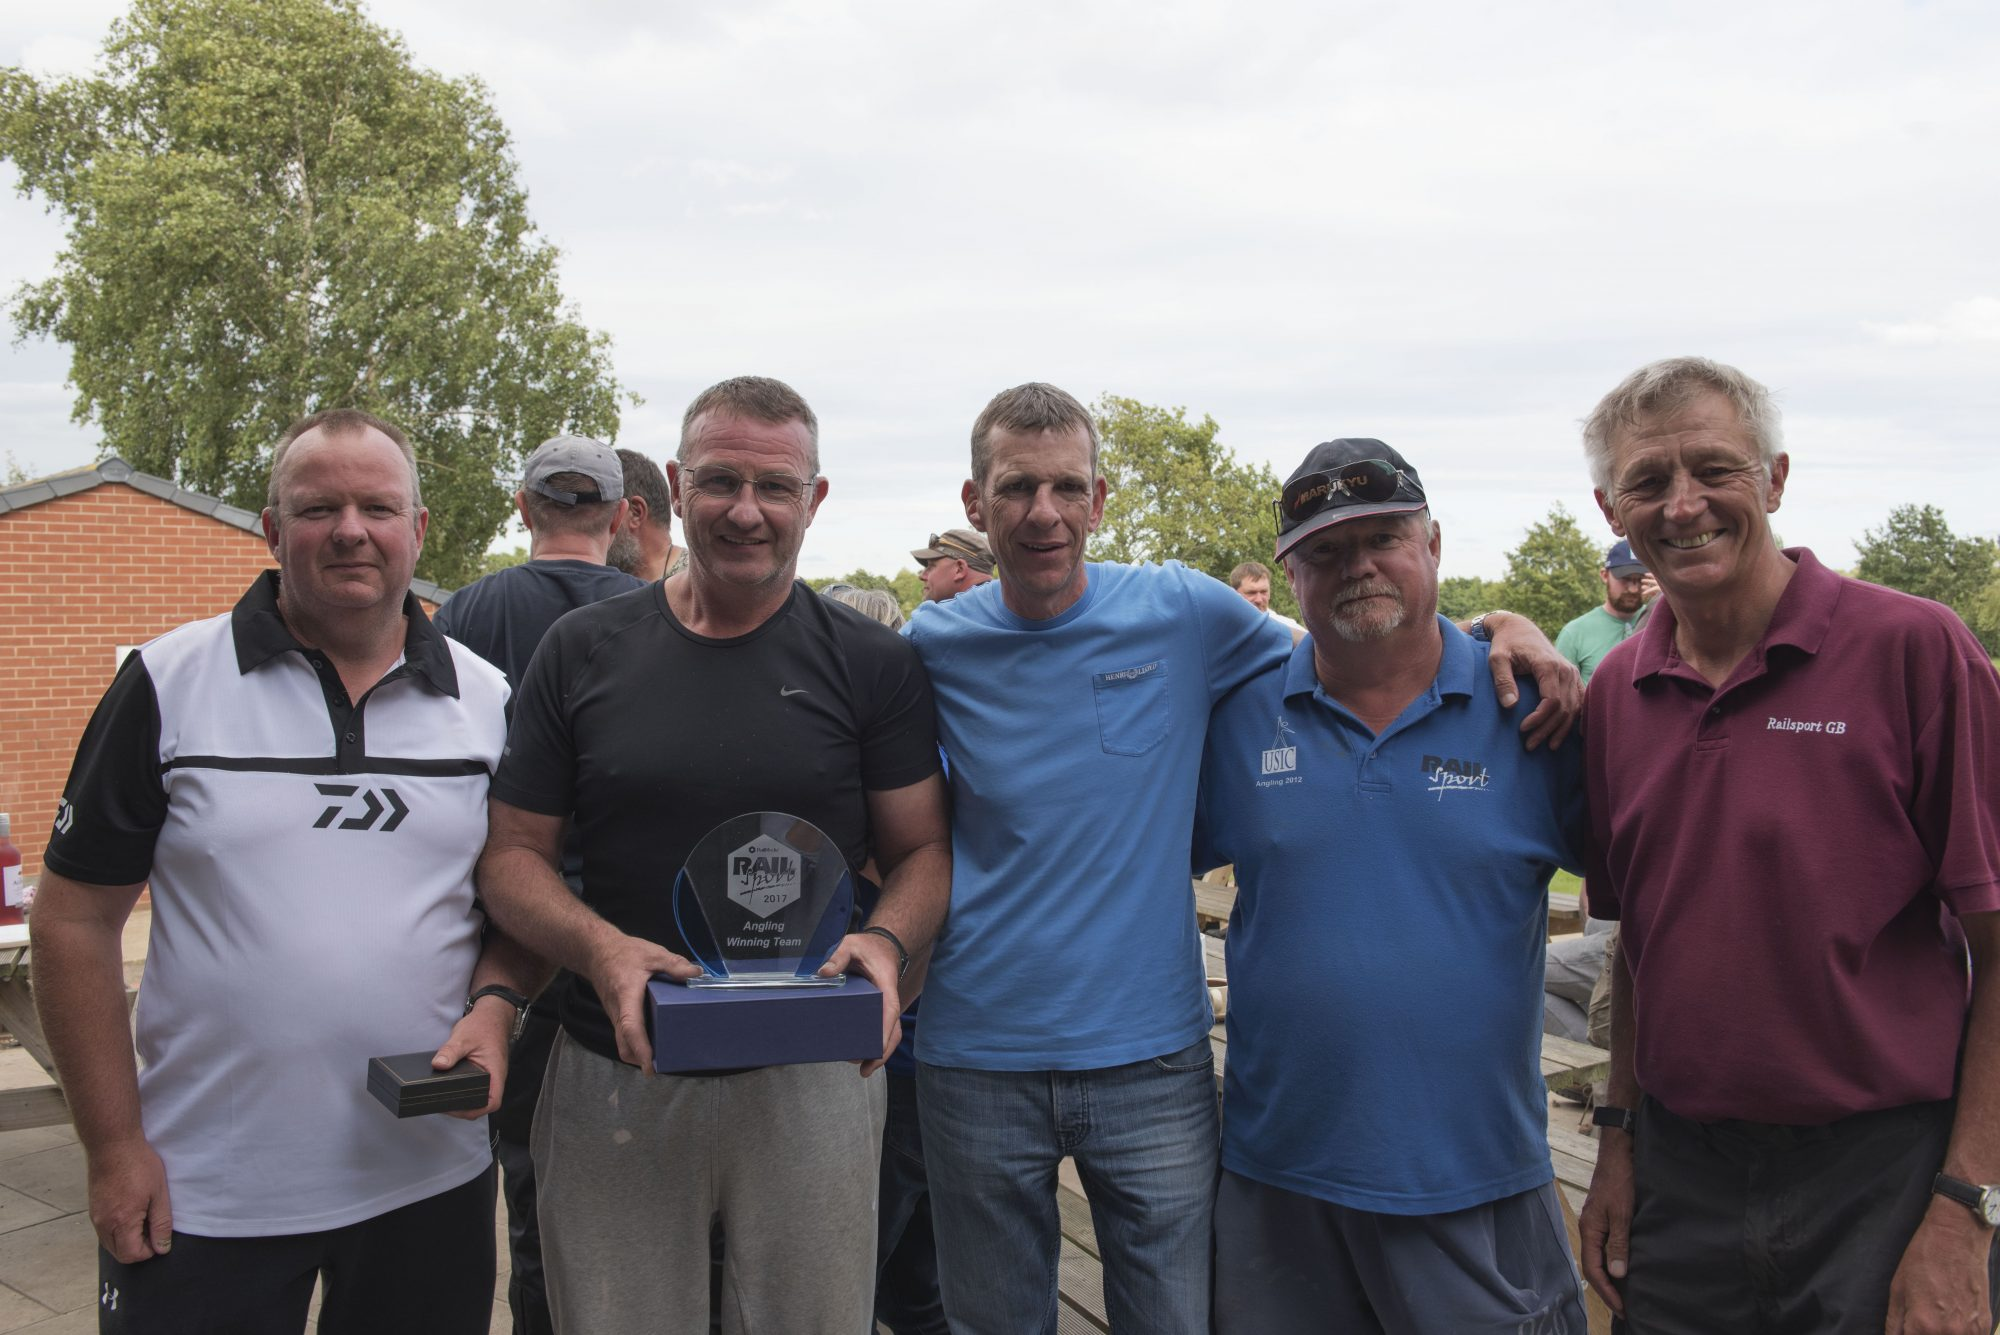 David Franks, far right, was a coarse fishing enthusiast and a supporter of the Rail Sport Games' Angling Championship.